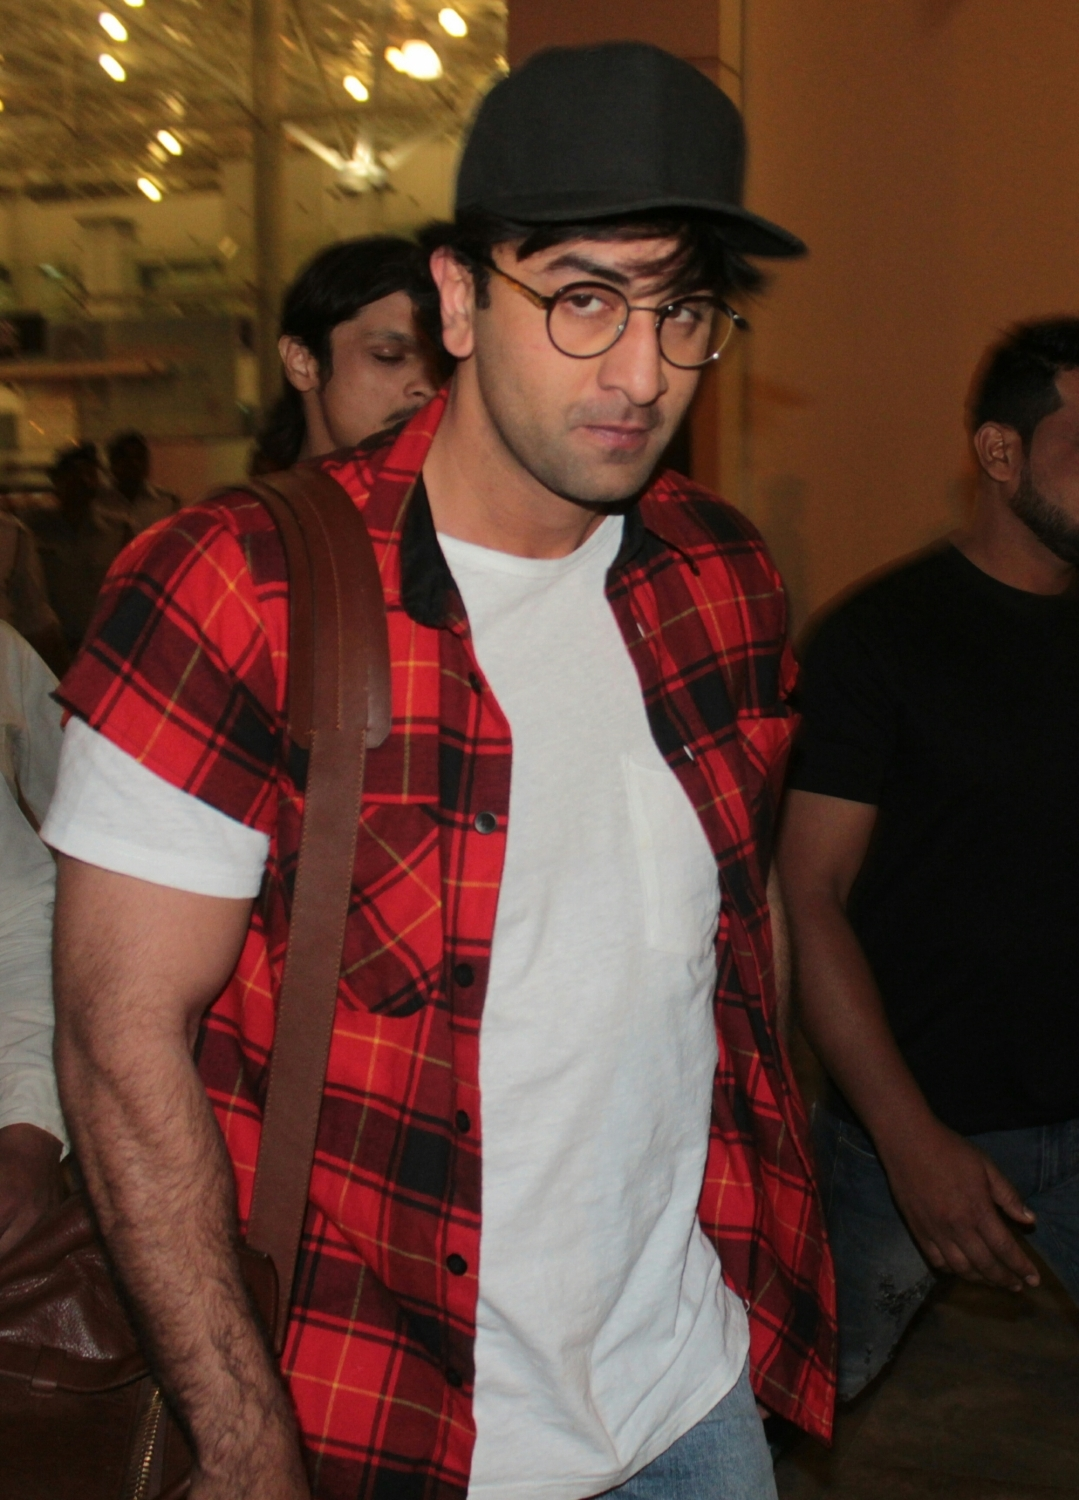 Ranbir and Katrina caught hand-in-hand on the movie set of Jagga Jasoos